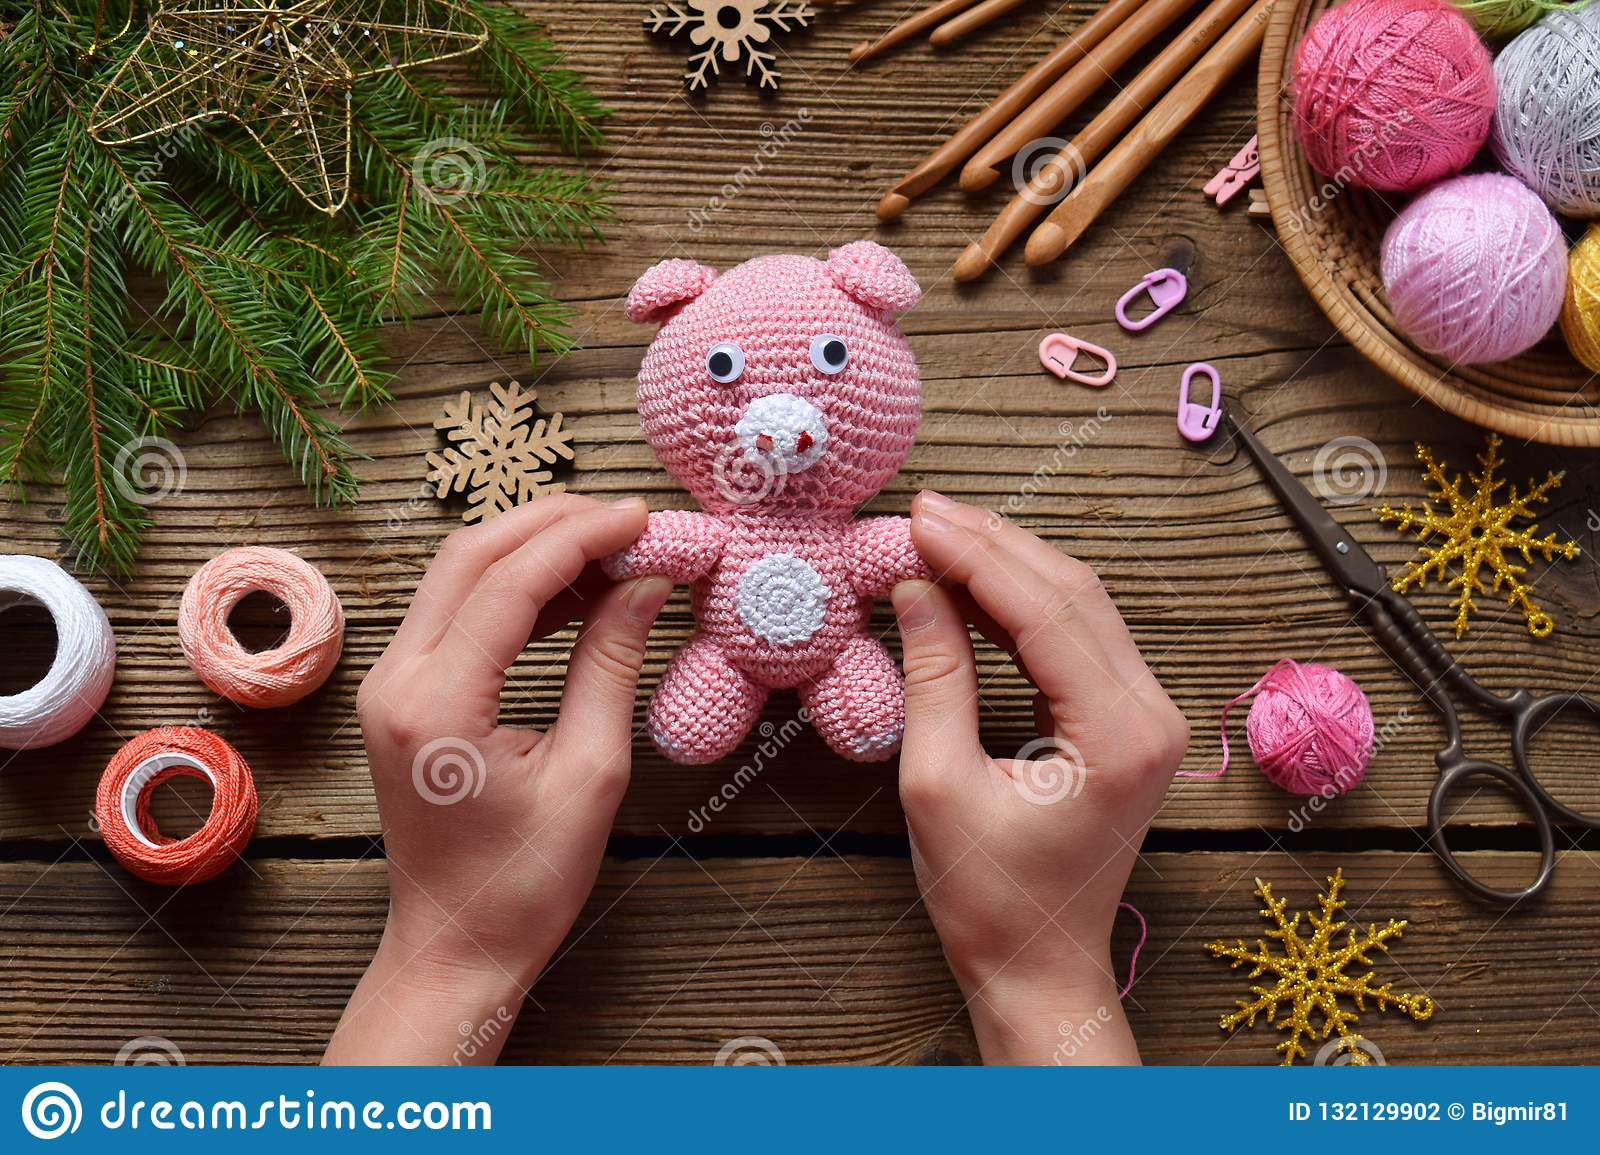 Pink pig, symbol of 2019. Happy New Year. Crochet toy for child. On table threads, needles, hook, cotton yarn. Handmade crafts on